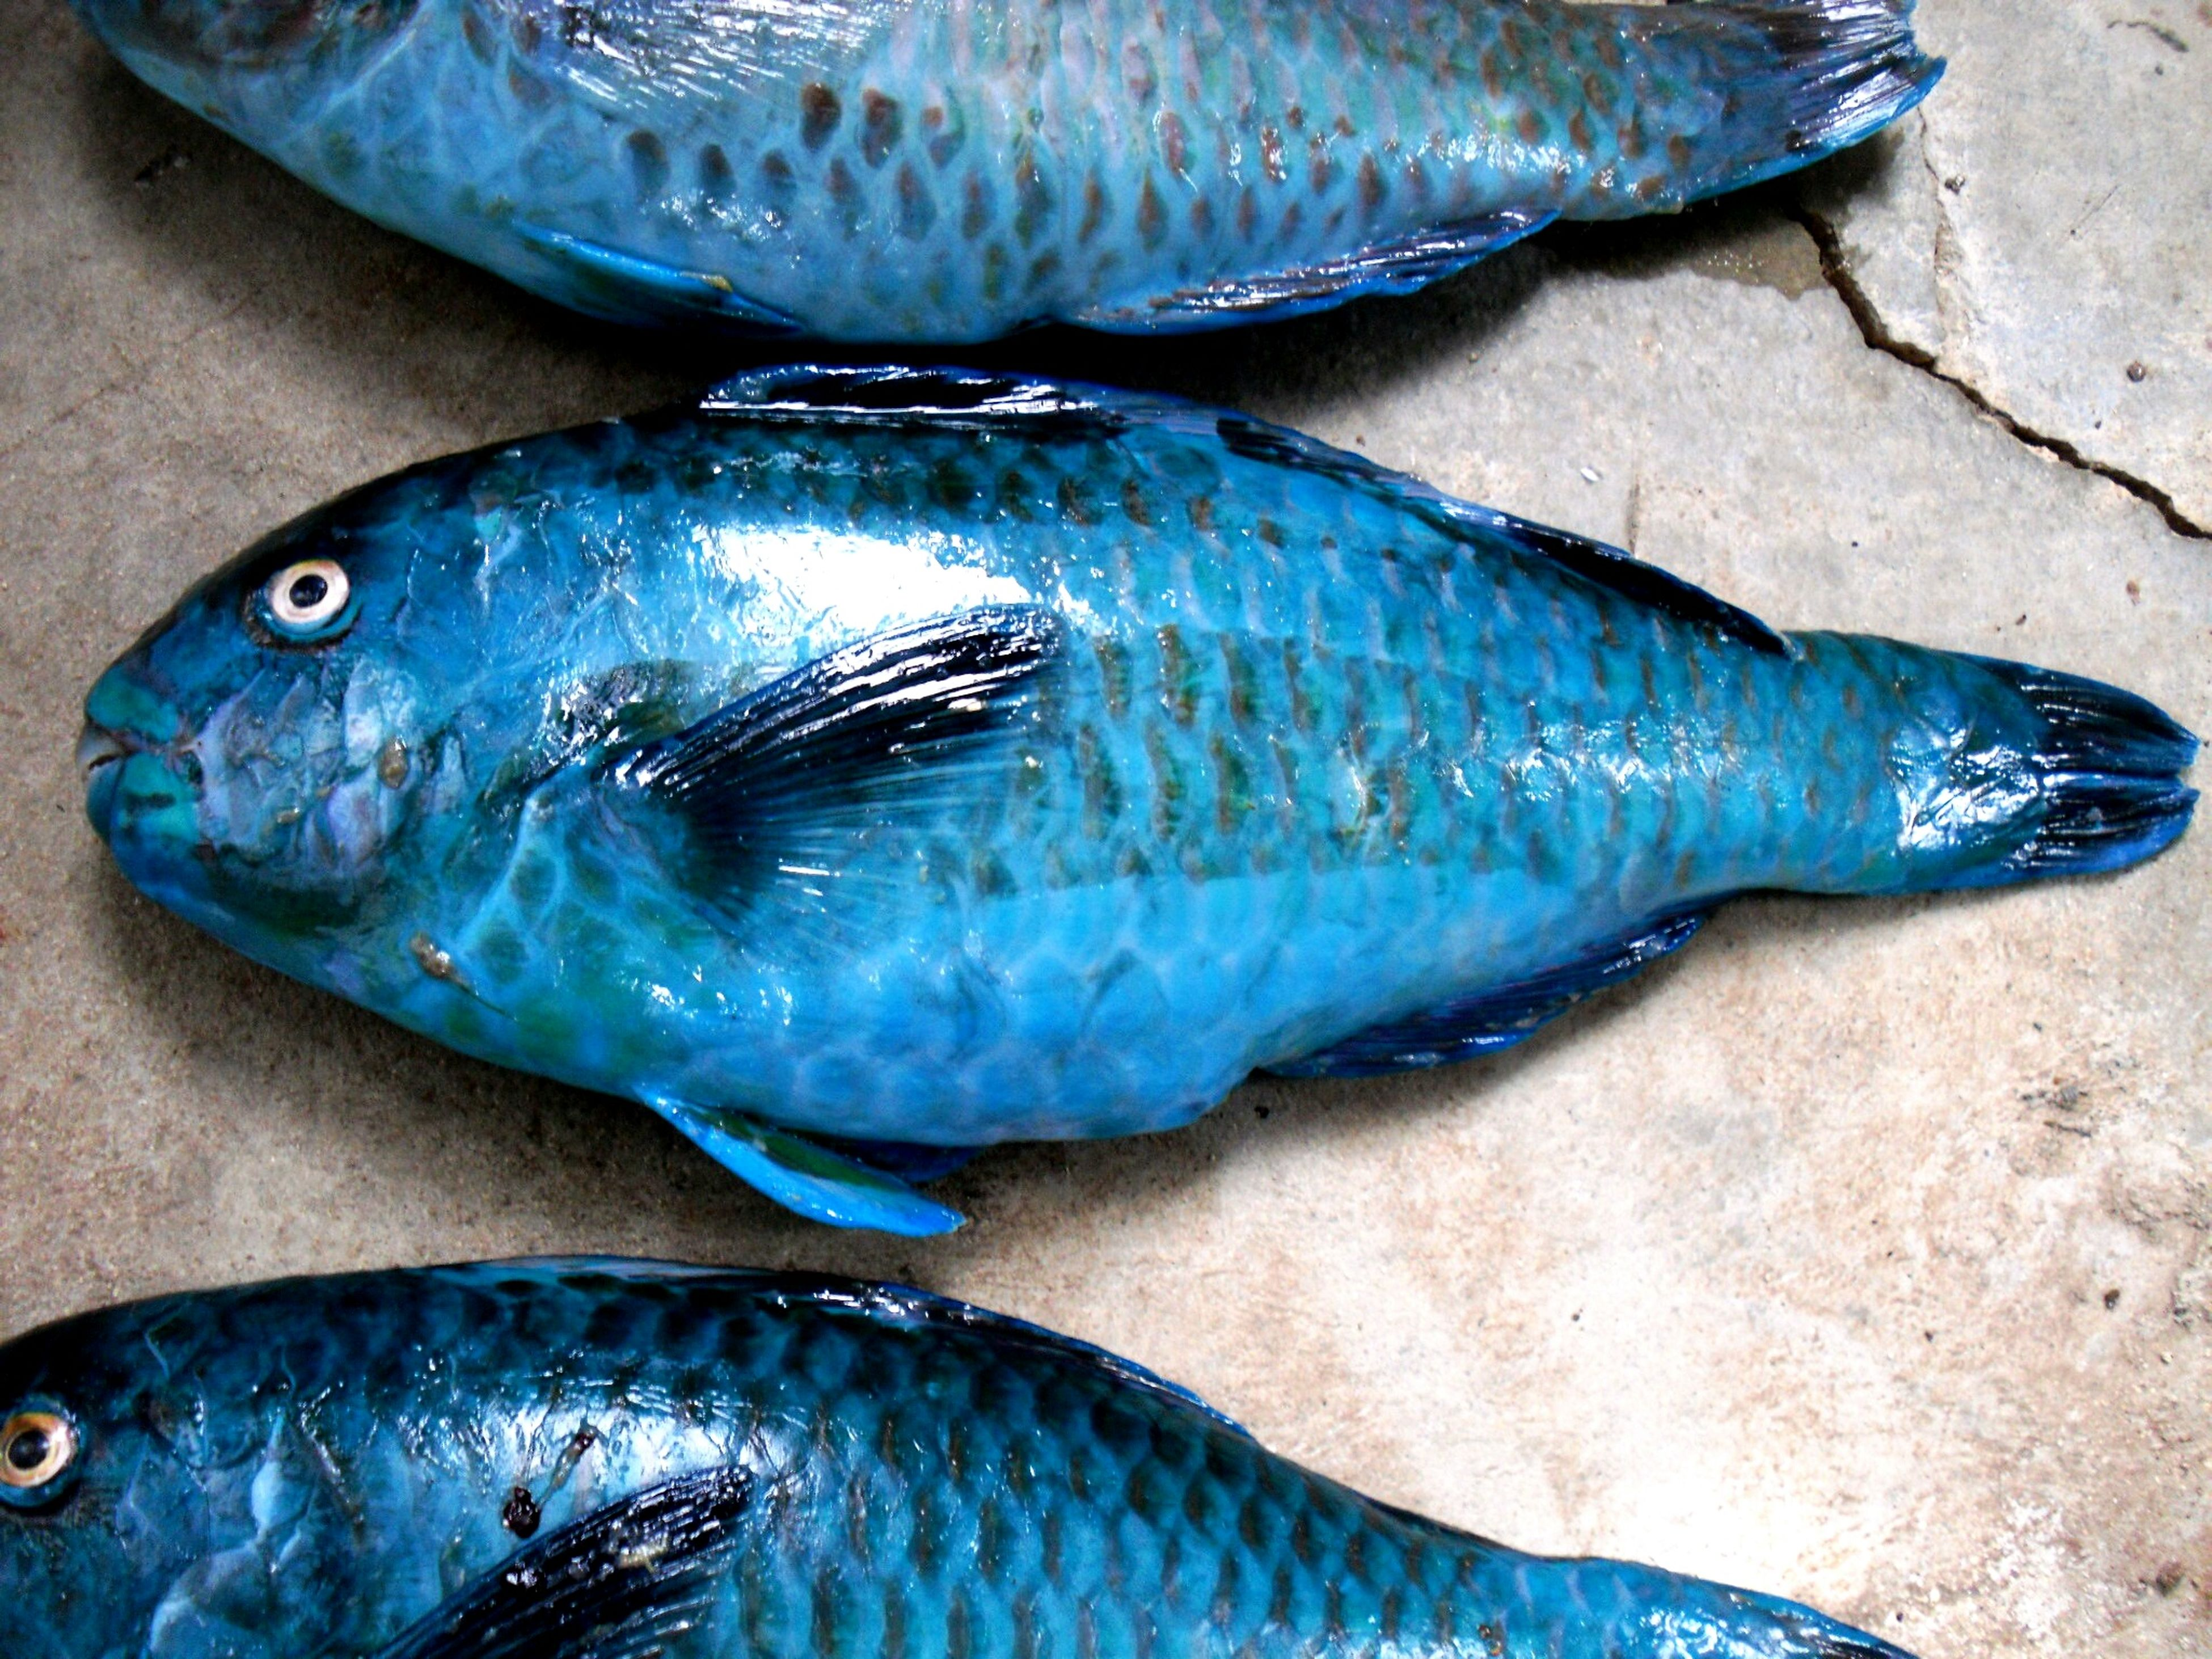 blue, water, fish, close-up, high angle view, food and drink, indoors, freshness, no people, still life, healthy eating, container, ice, day, seafood, directly above, dead animal, animal themes, plastic